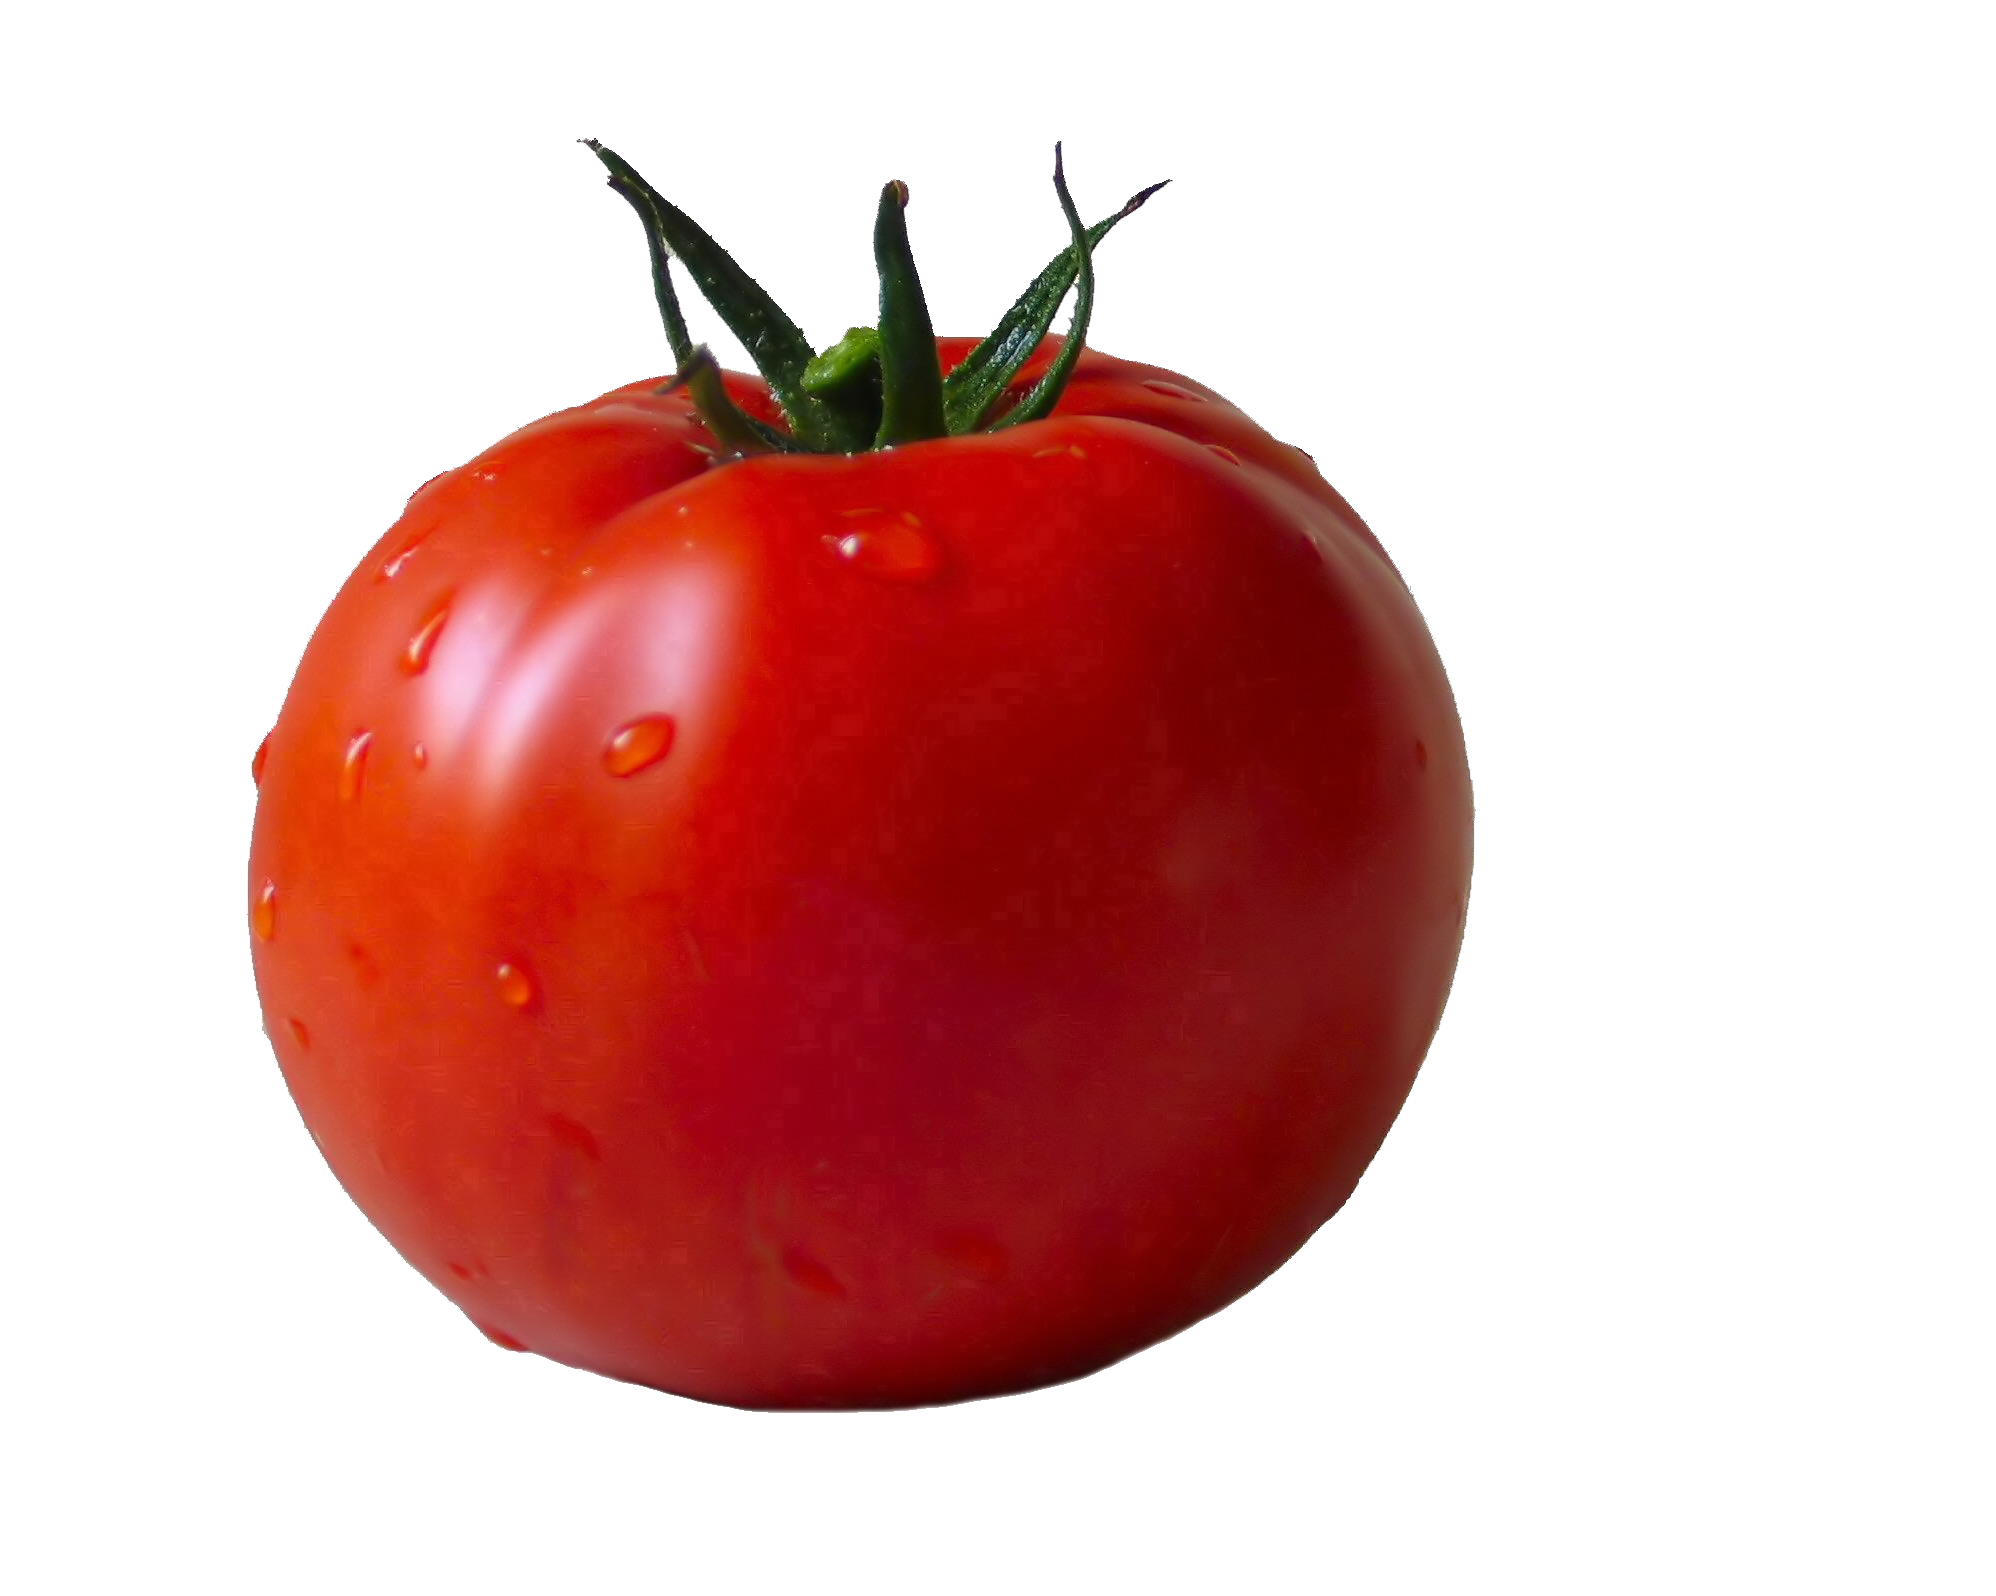 Tomato png, image, picture